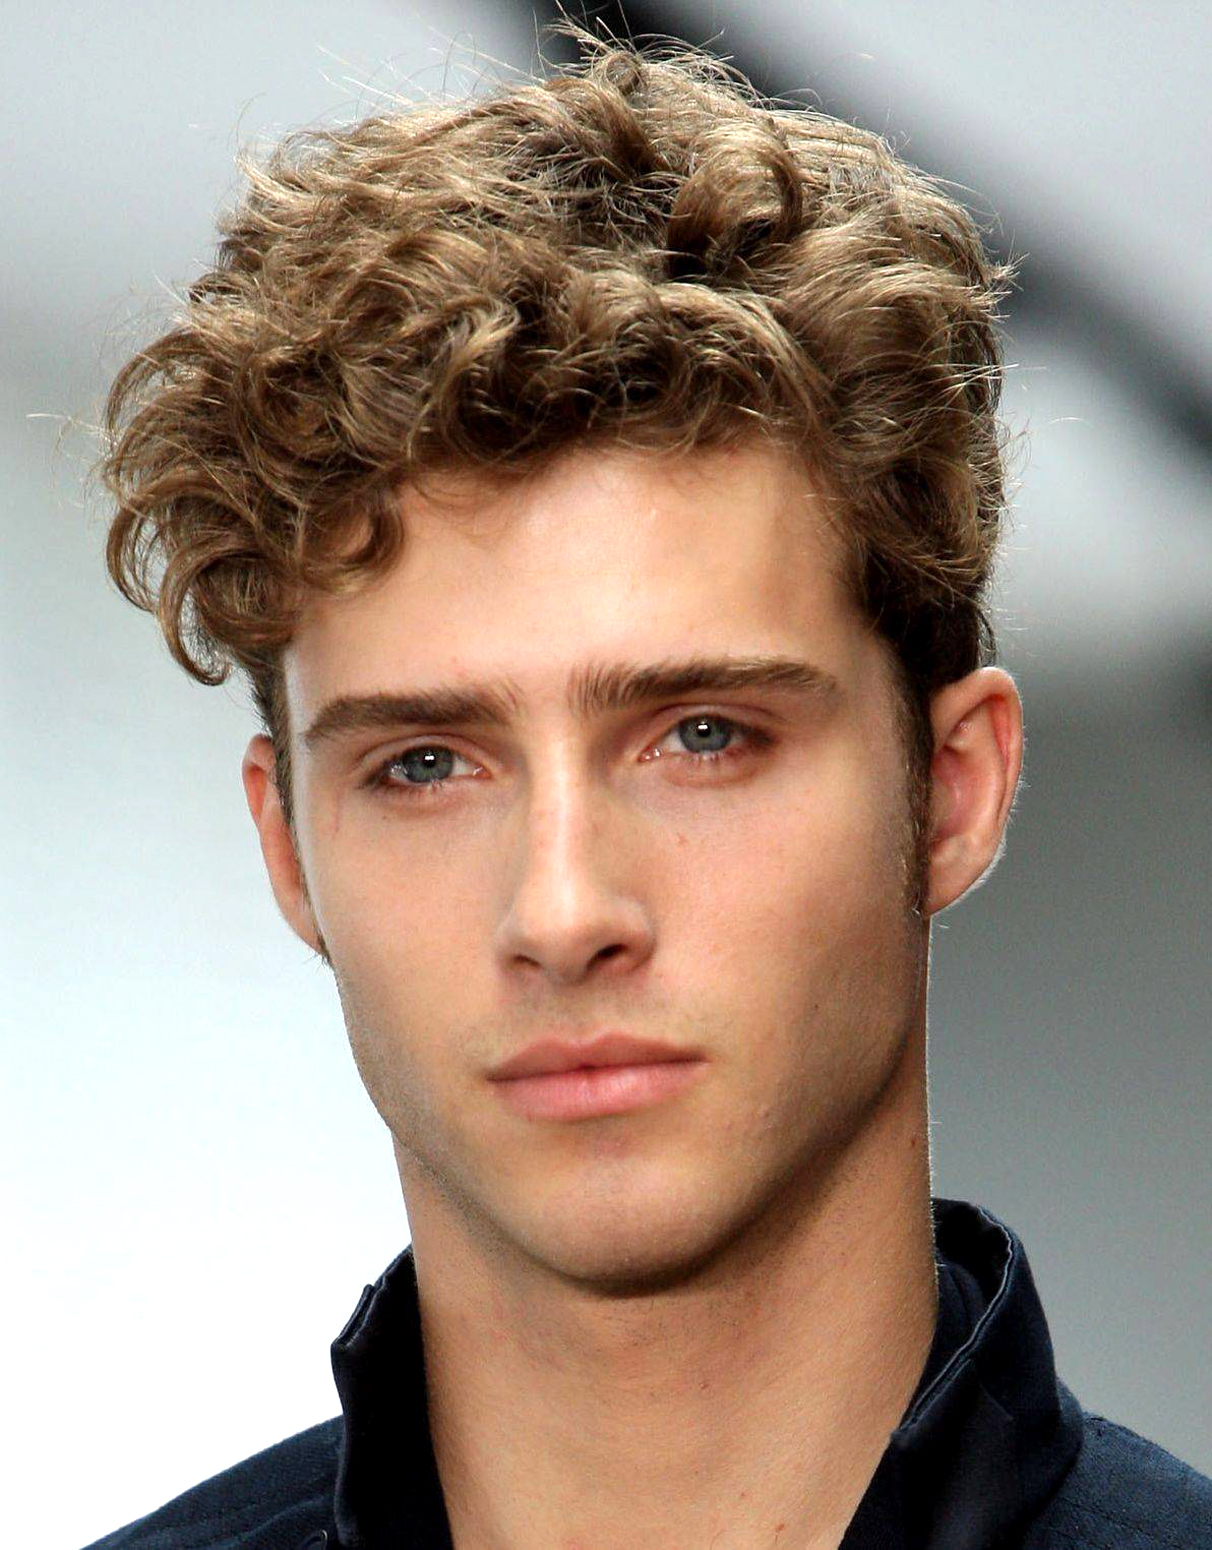 male hairstyles photo - 2